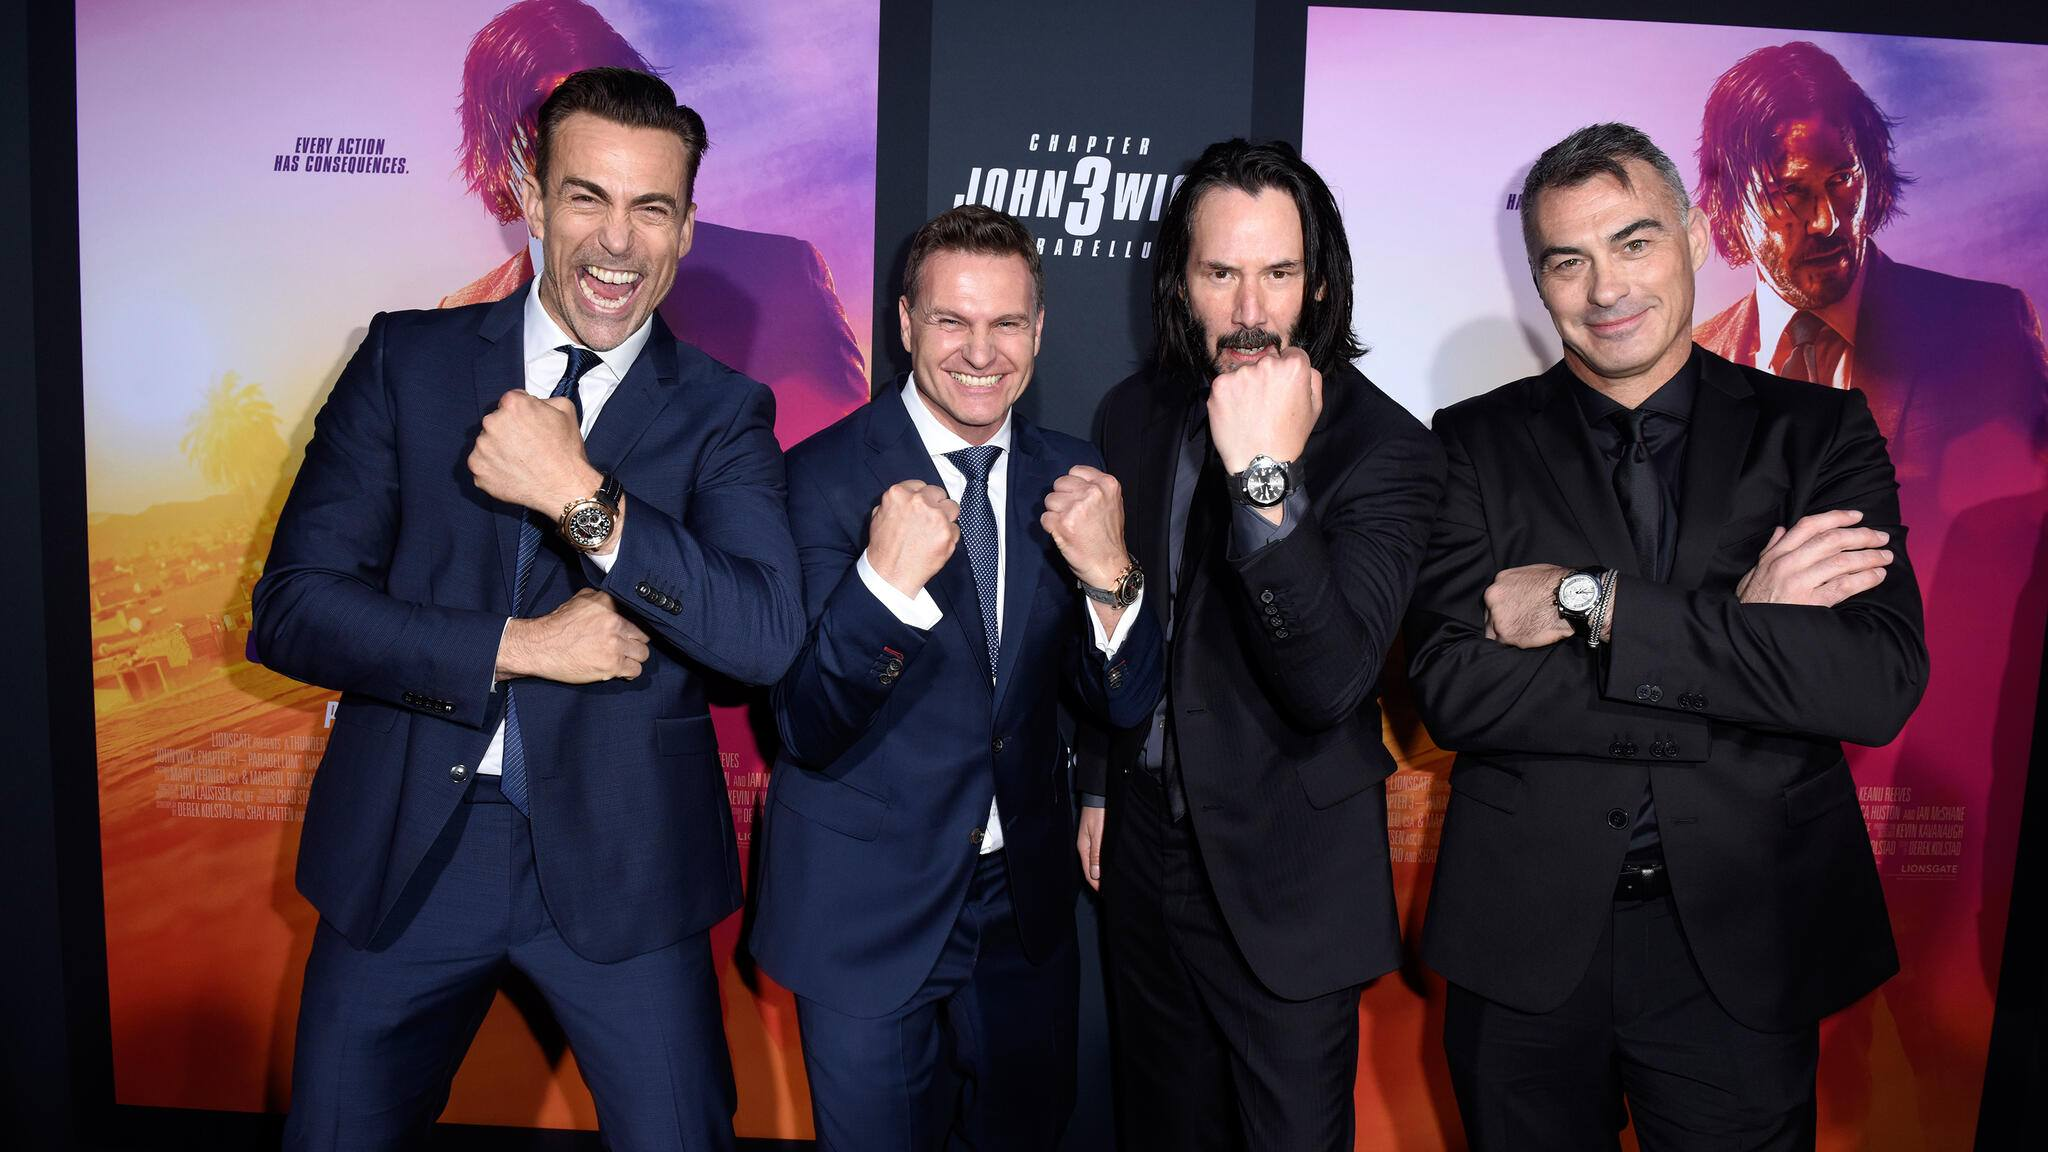 "LOS ANGELES, CALIFORNIA - MAY 15: (L-R)  Daniel Bernhardt,  CEO of Carl F. Bucherer Sascha Moeri, Keanu Reeves, and Chad Stahelski celebrate the premiere of ""John Wick: Chapter 3 - Parabellum"" on May 15, 2019 in Los Angeles, California. (Photo by Vivien Killilea/Getty Images for Carl F. Bucherer )"